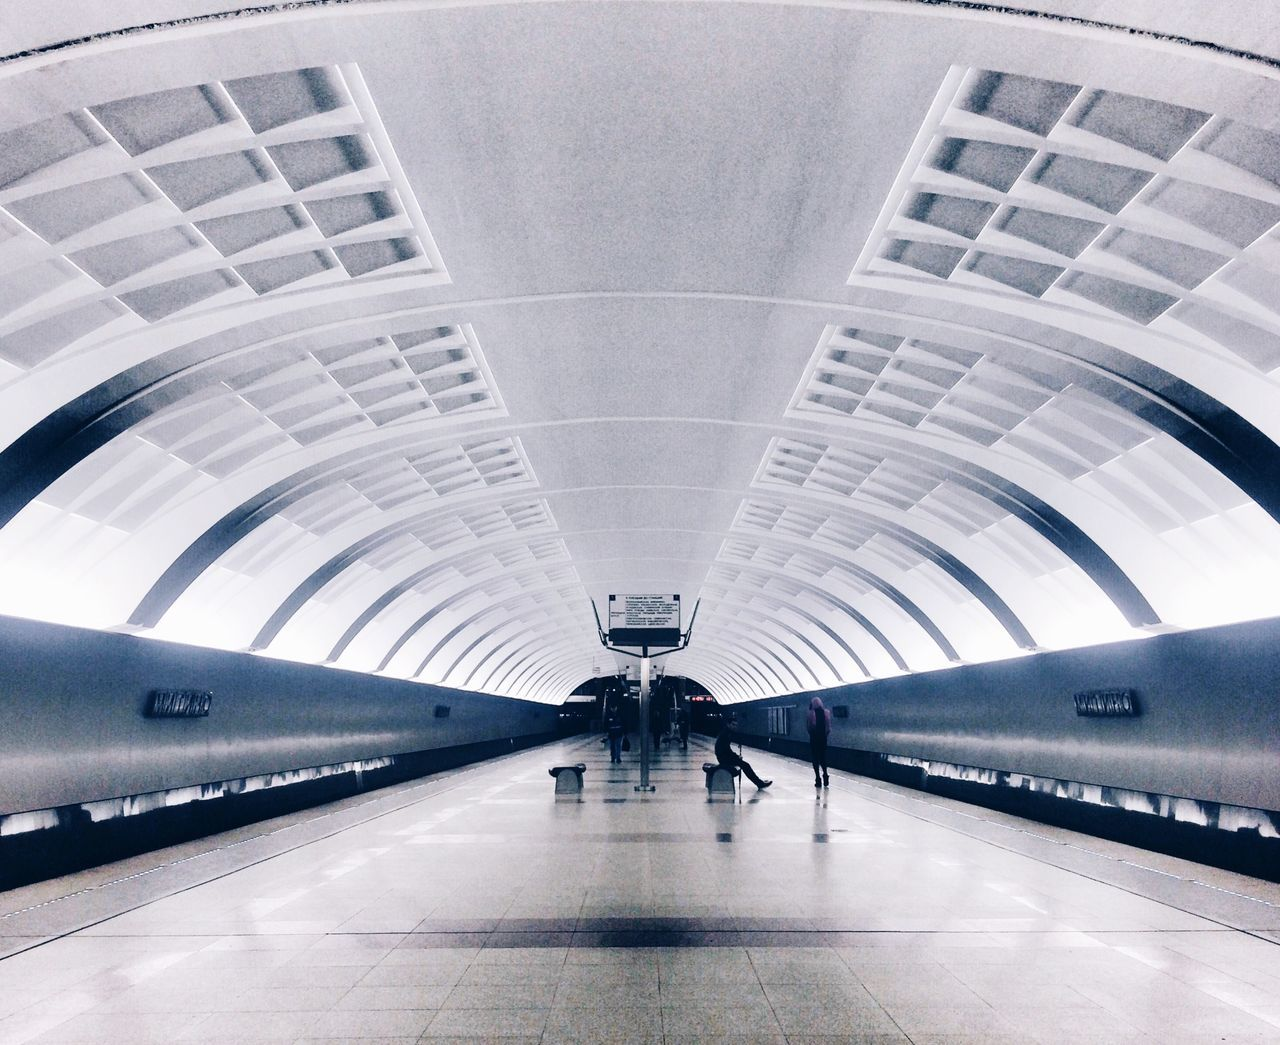 Moscow Metro Stations Studies Of Whiteness Beauty In Ordinary Things Architecture Urban Geometry Perspective Symmetry The Architect - 2015 EyeEm Awards Amazing Architecture My Best Photo 2015